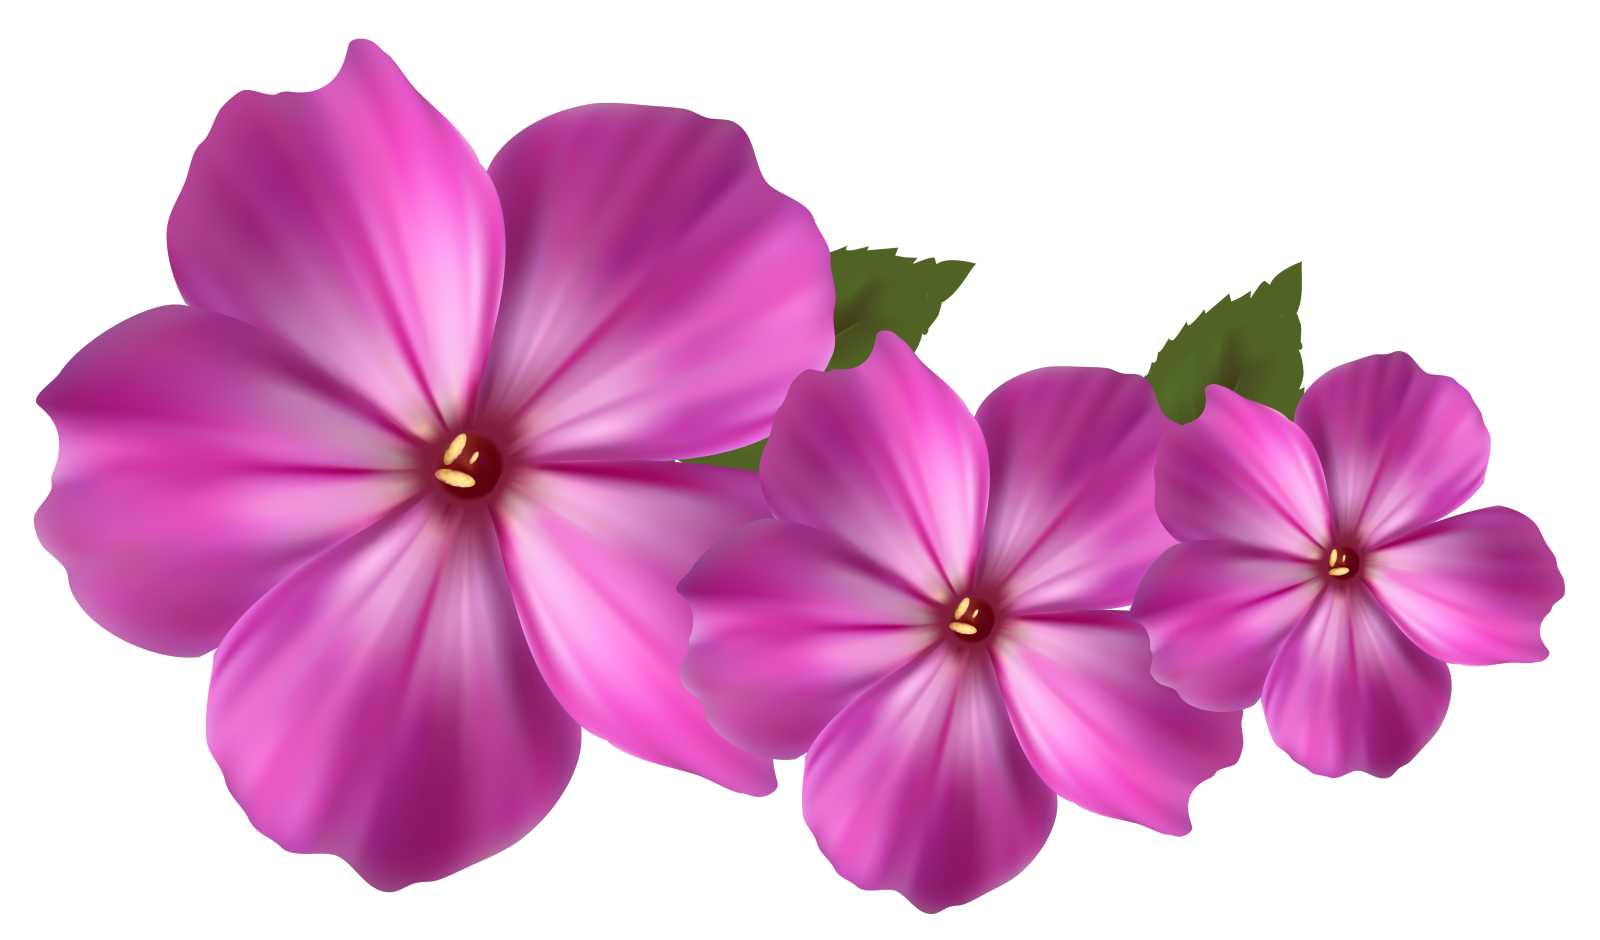 Free flower png images. Pink flowers clip art